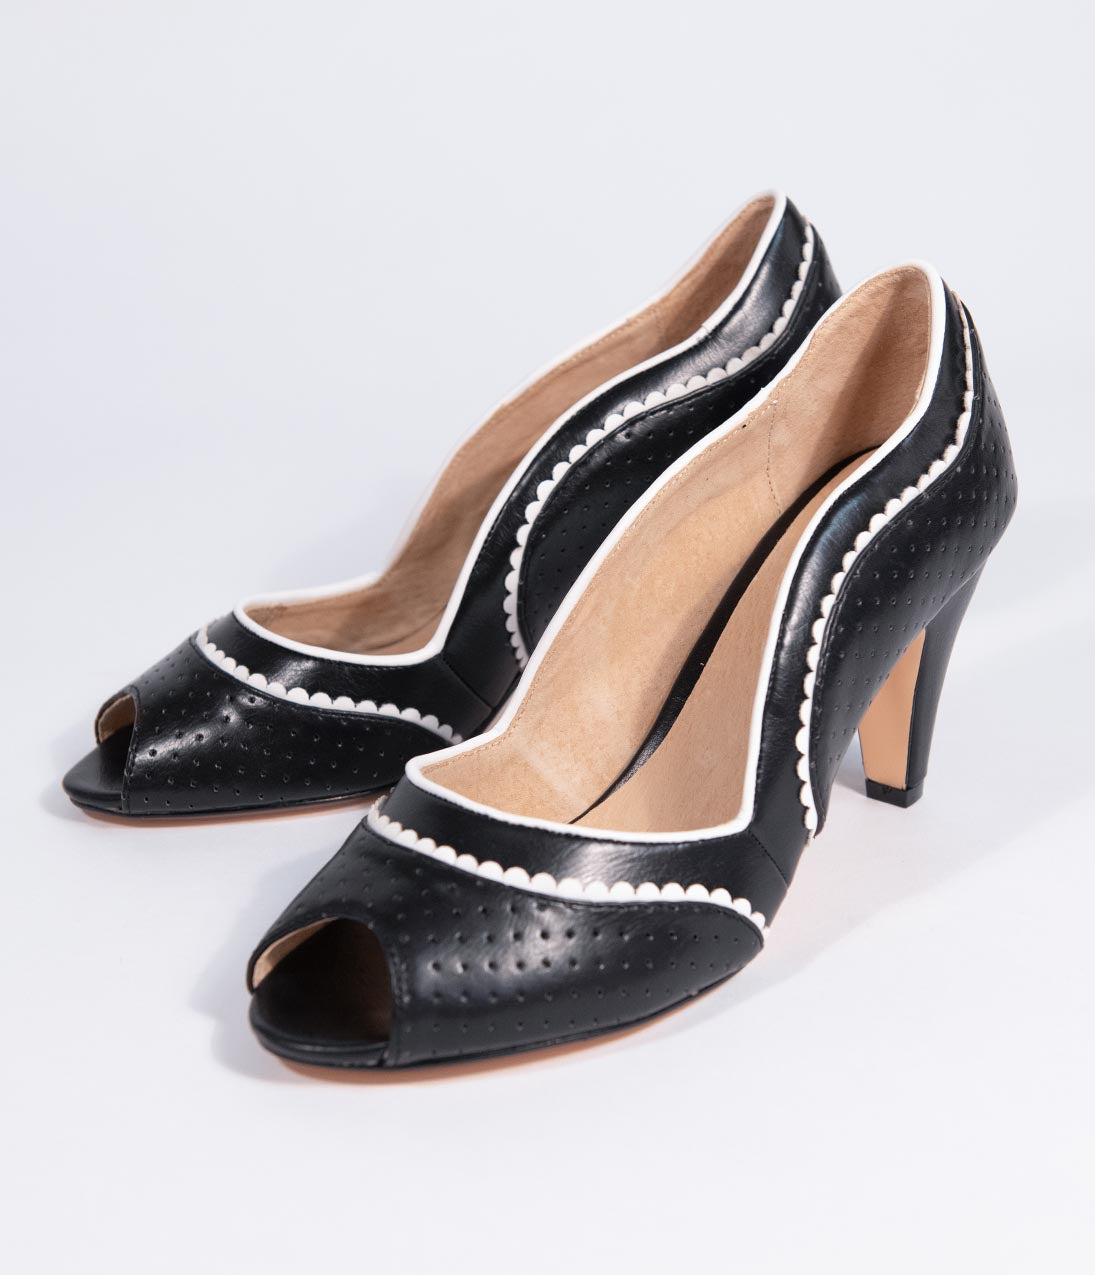 1950s Style Shoes | Heels, Flats, Saddle Shoes Chelsea Crew Black  White Scalloped Leatherette Peep Toe Shana Pumps $68.00 AT vintagedancer.com